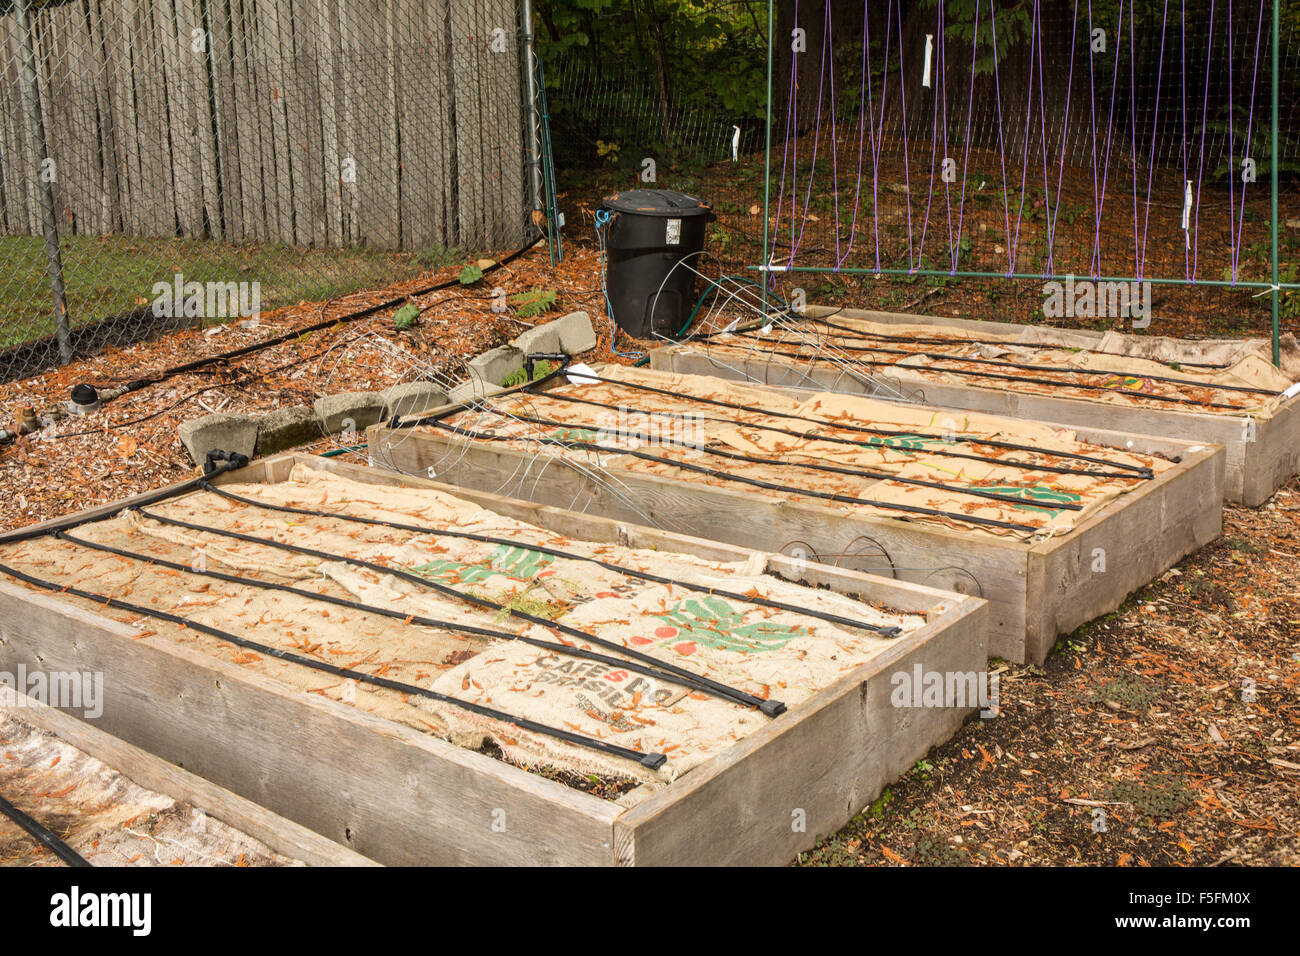 Raised Garden Beds Prepared For The Winter By Putting Burlap Bags Over Soil  To Lessen The